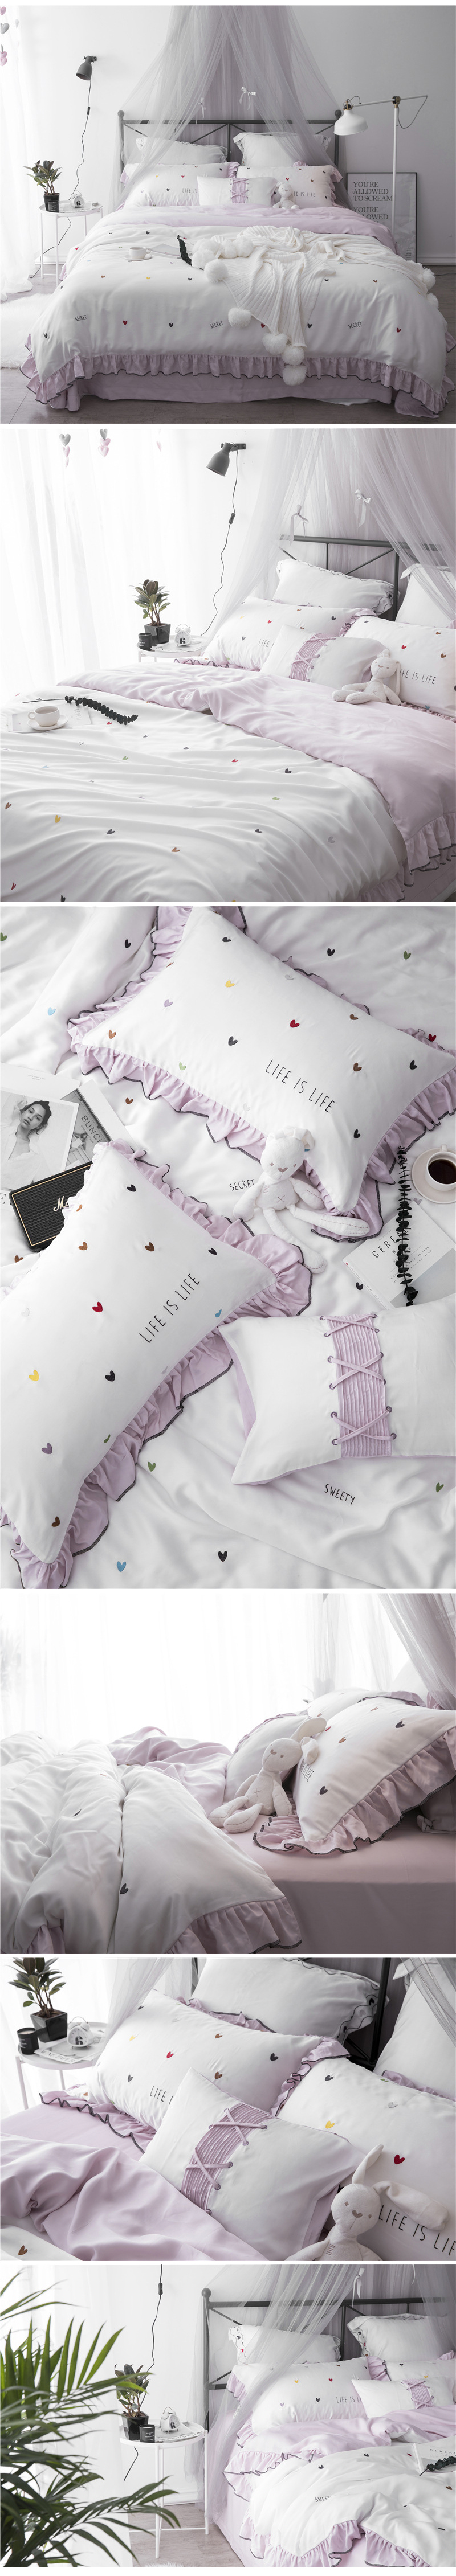 2018 comforter bedding sets 60s tencel coon coon bed sheets small fresh embroidery wedding bed cover housse de couee 4